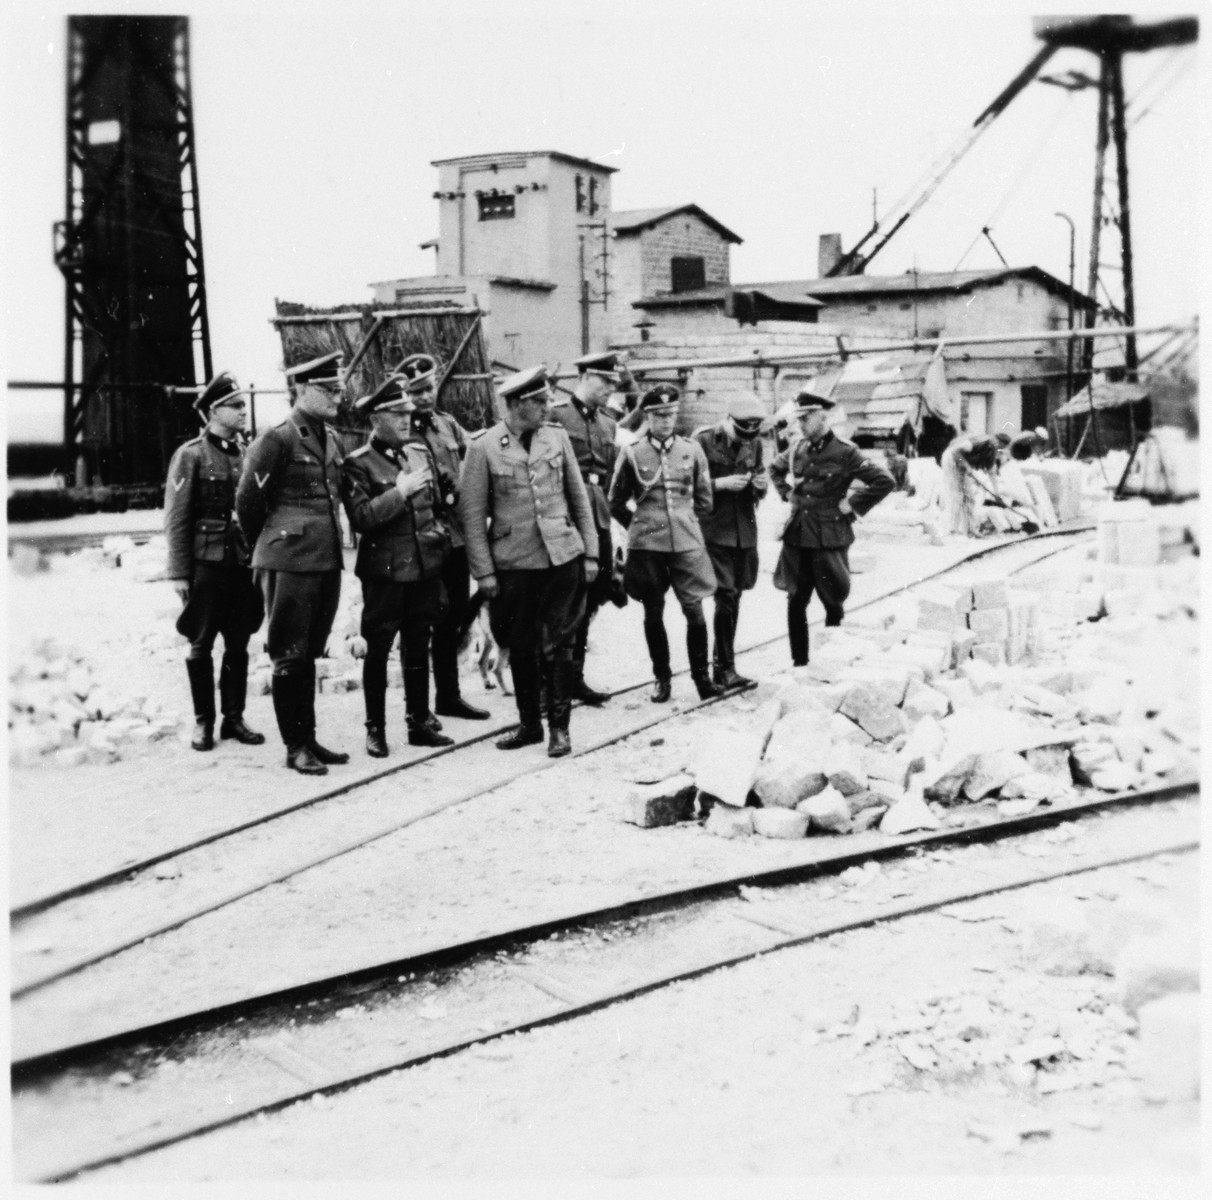 SS-Obergruppenfuehrer Schmauser visits the quarry in the Gross-Rosen concentration camp.  Accompanying him is the commandant, Arthur Roedl.